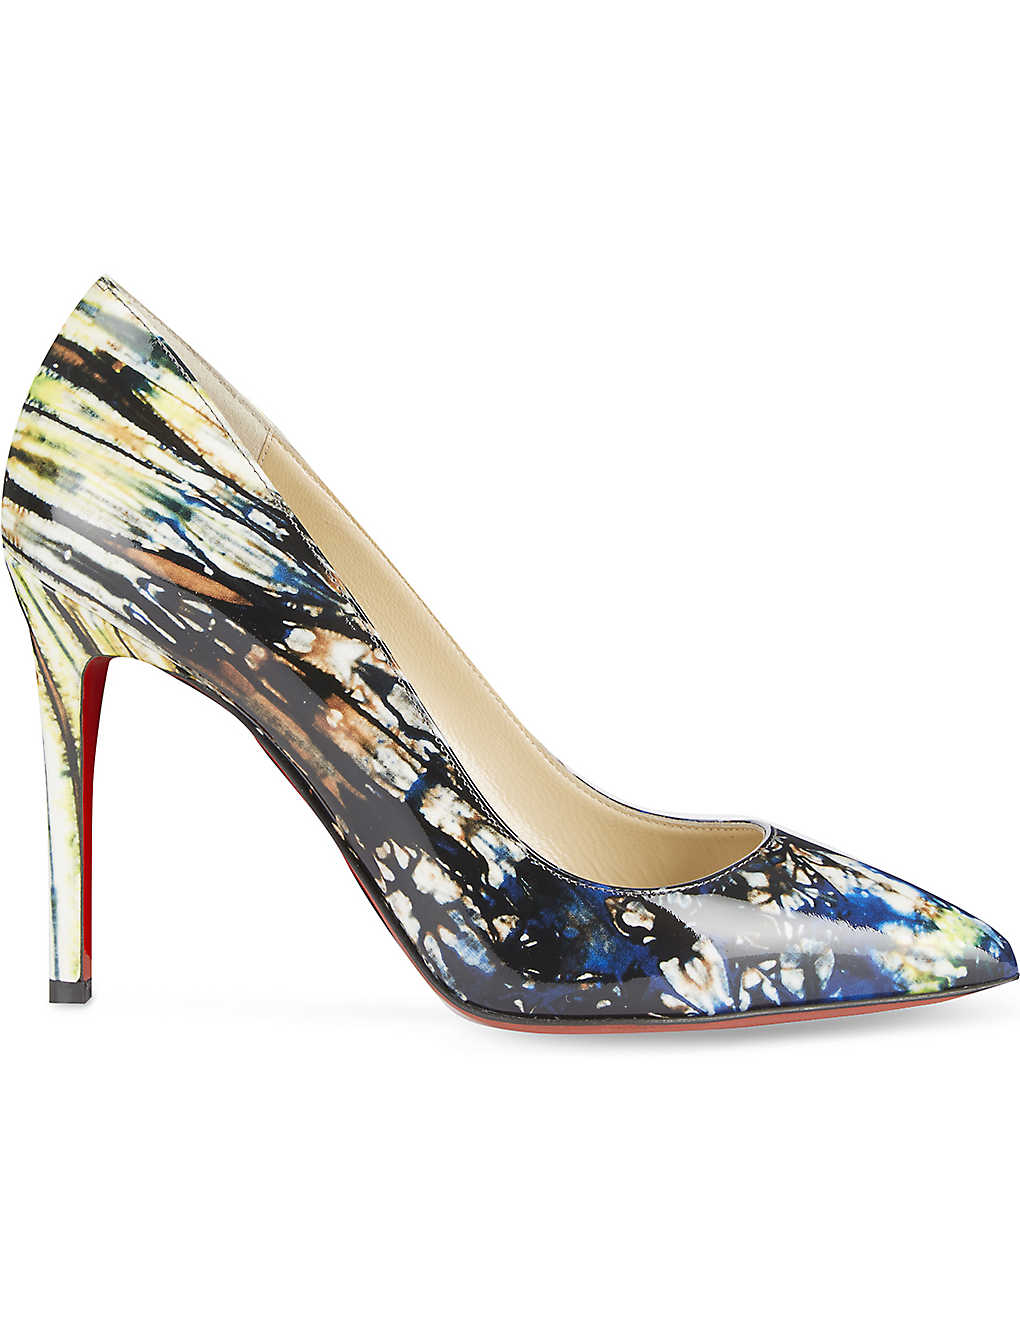 separation shoes e42bb 3d2ac CHRISTIAN LOUBOUTIN - Pigalle 100 patent bazin | Selfridges.com